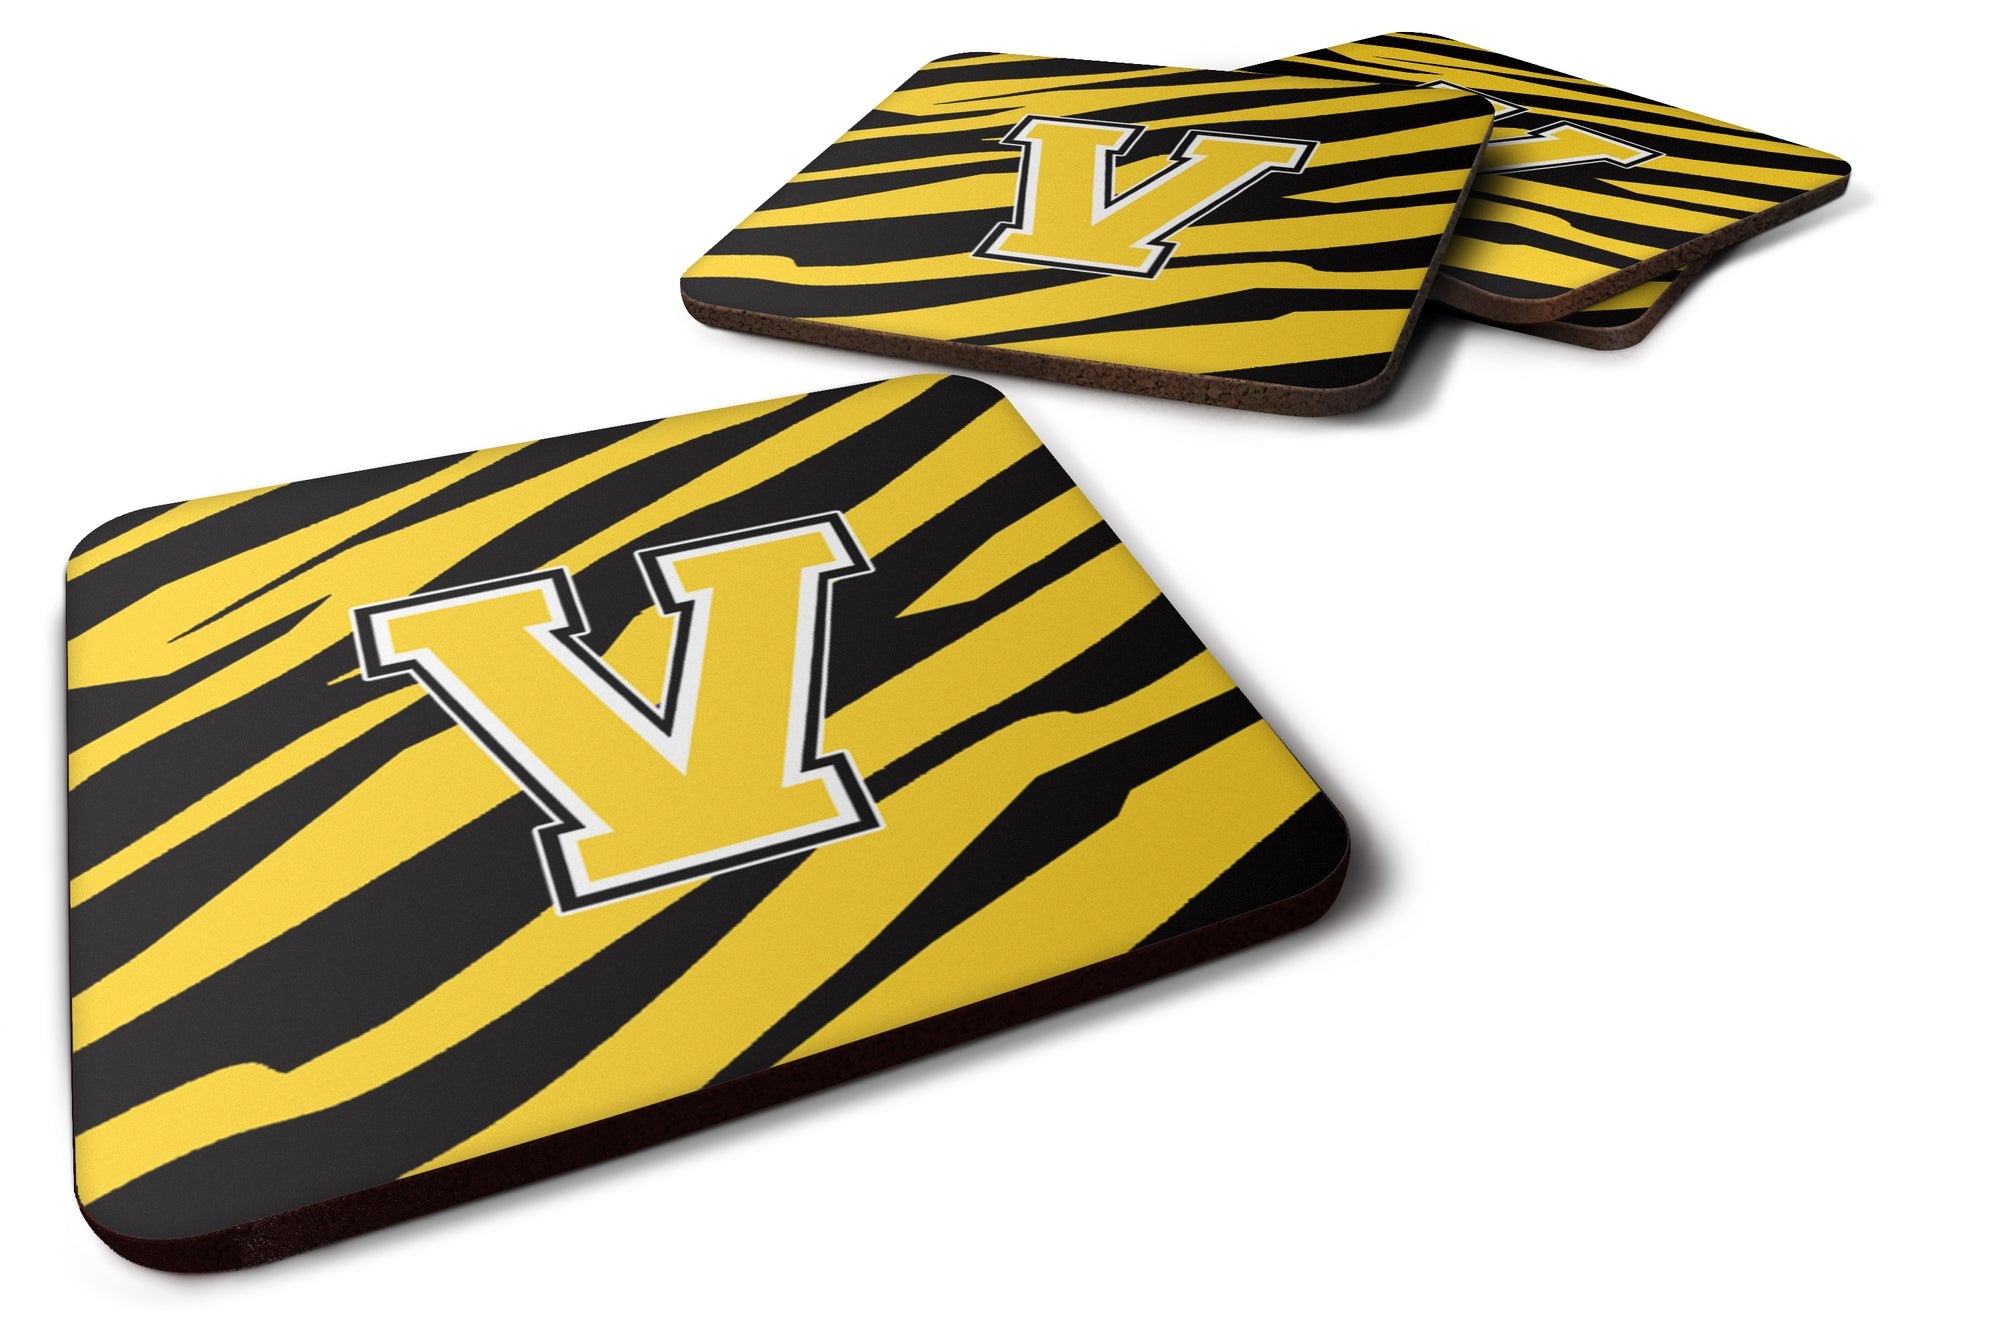 Set of 4 Monogram - Tiger Stripe - Black Gold Foam Coasters Initial Letter V by Caroline's Treasures